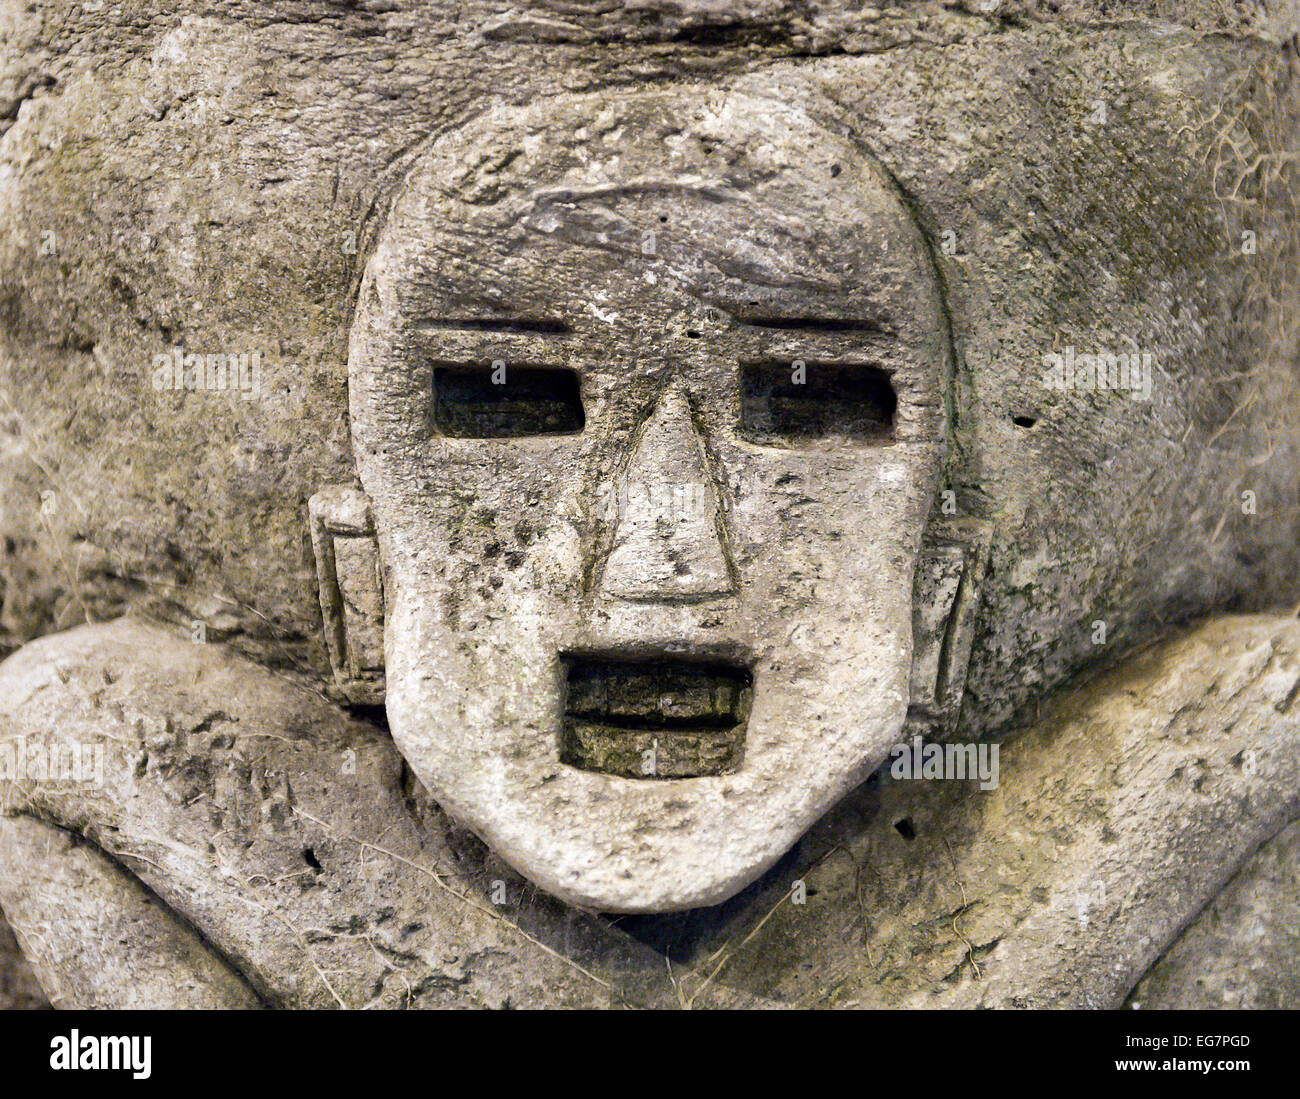 Ancient Asian stone carving of a man. - Stock Image